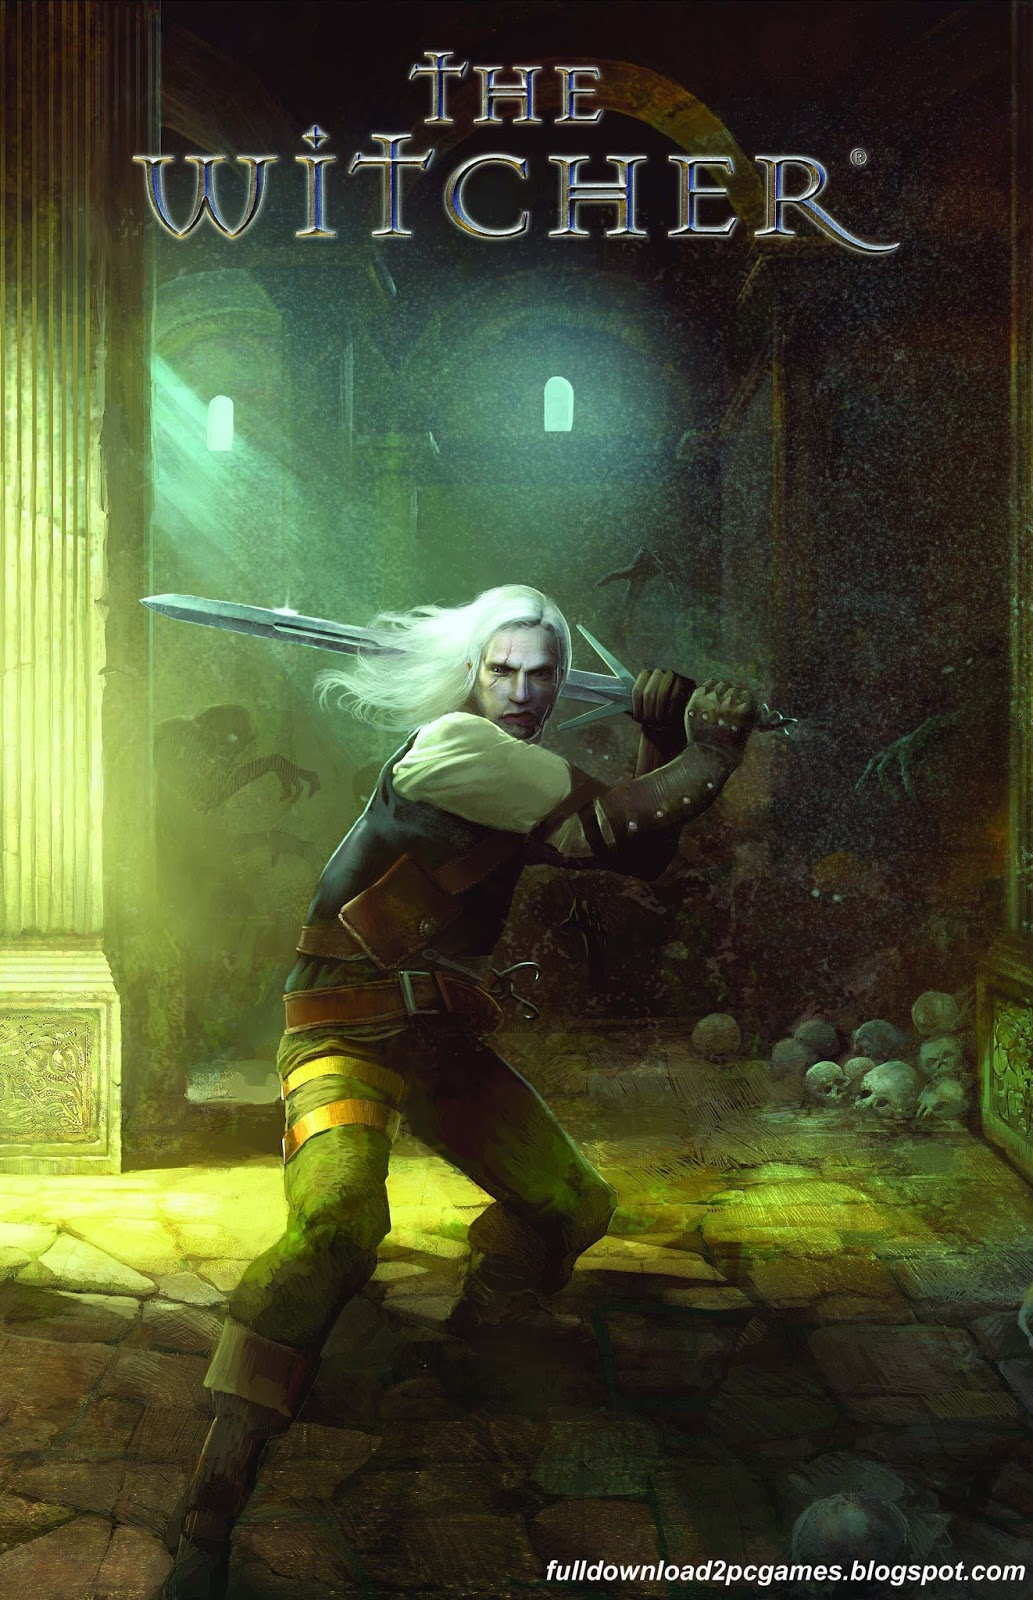 The Witcher 1 Free Download PC Game - Full Version Games